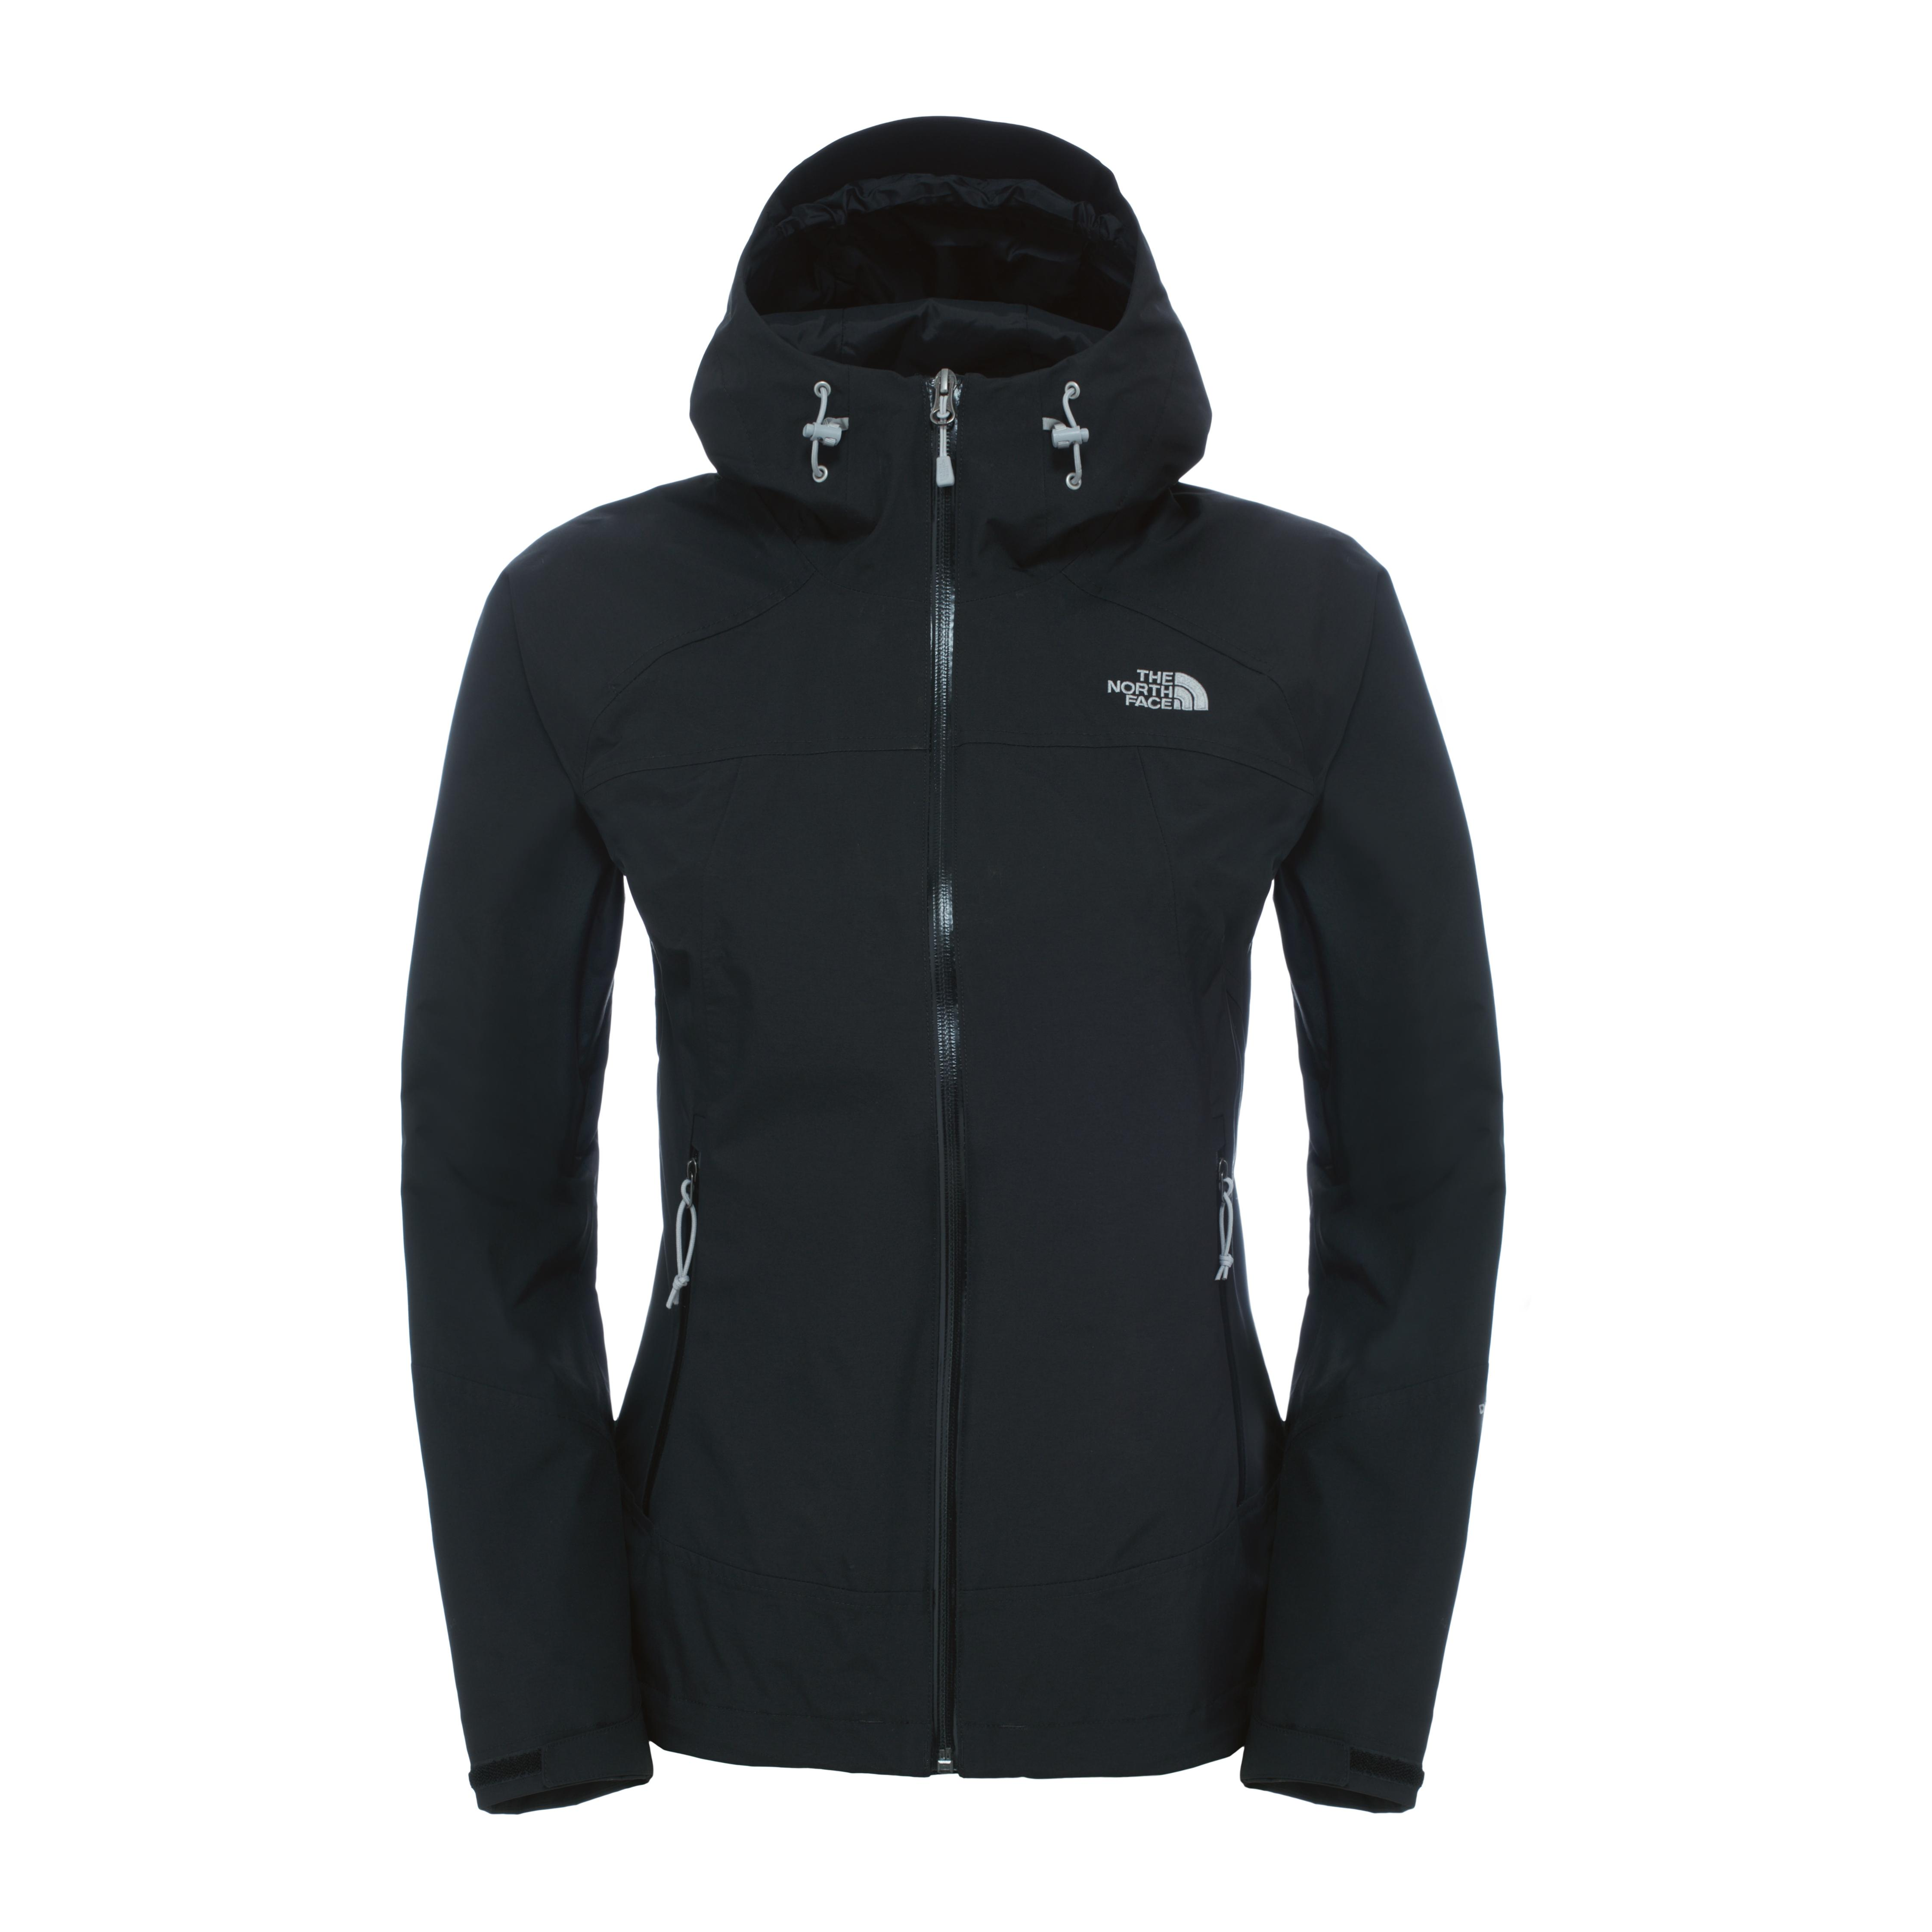 e2cf64ca18 The north face stratos jacket noir : veste modèle femme